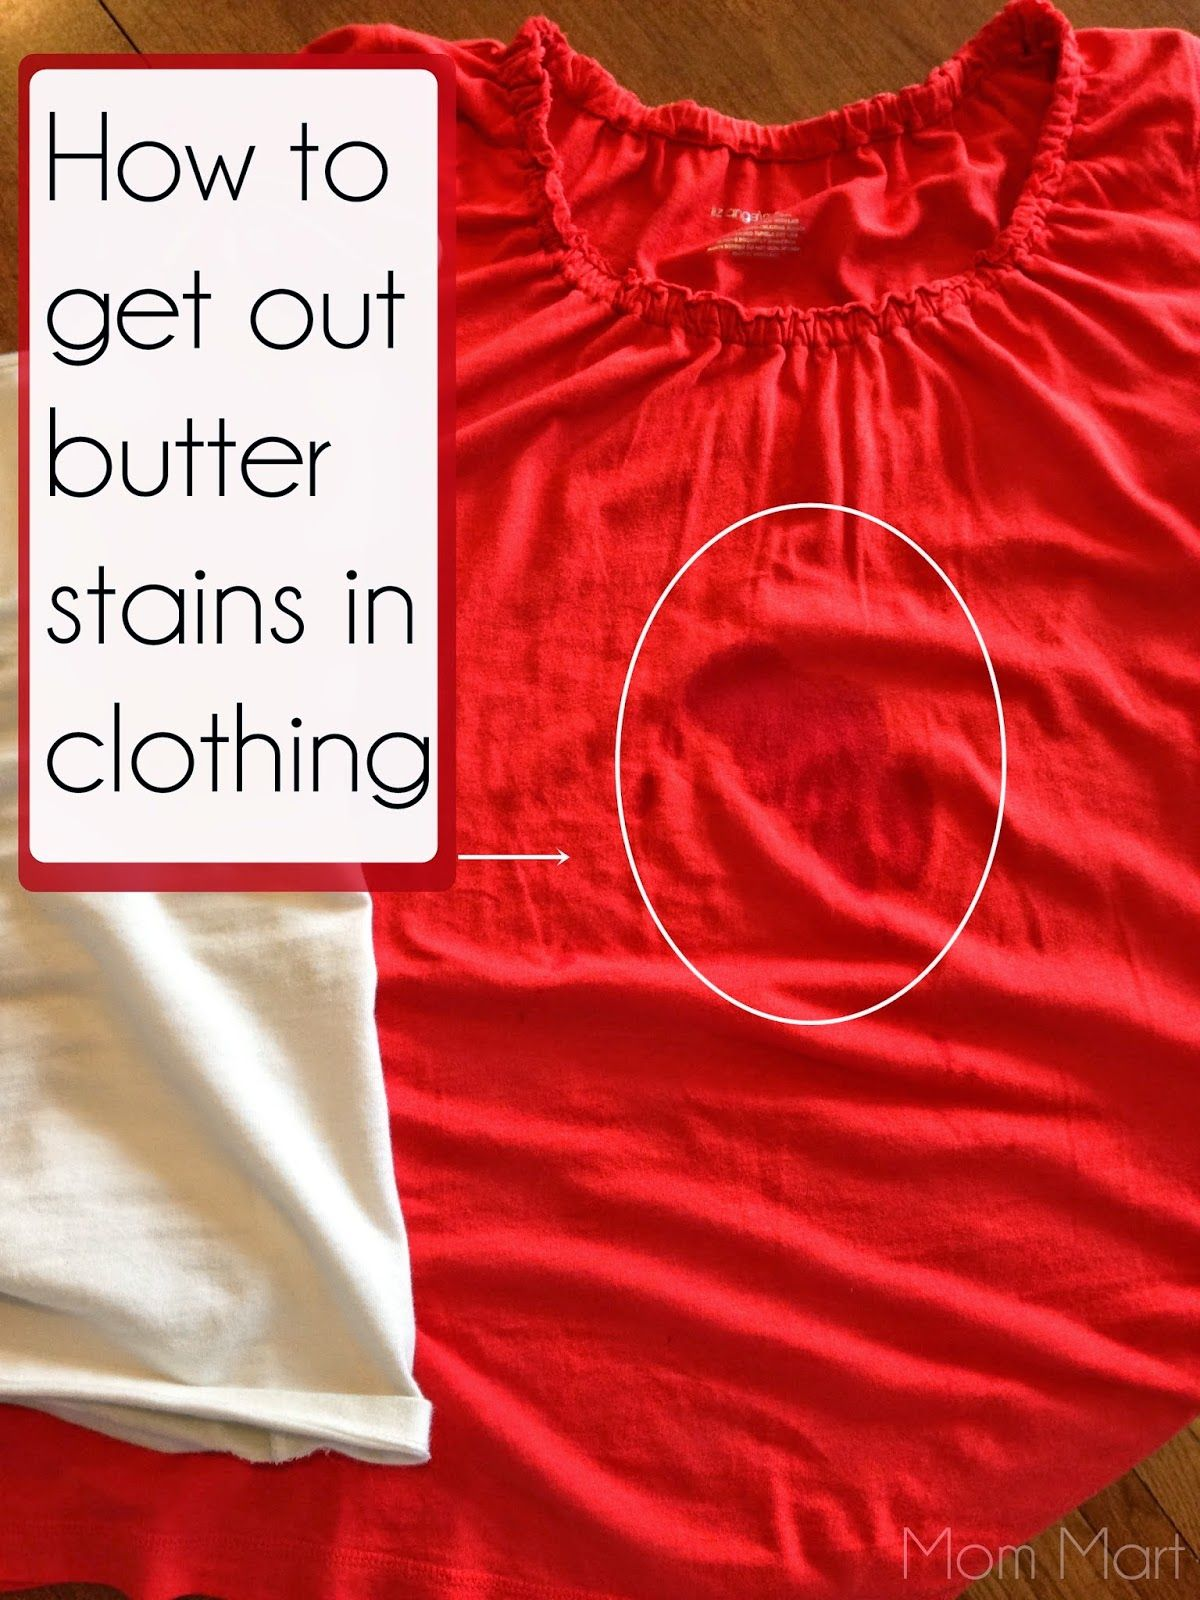 Mom Mart How To Get Out Butter Stains Diy House Cleaning Tips Clean House Cleaning Hacks